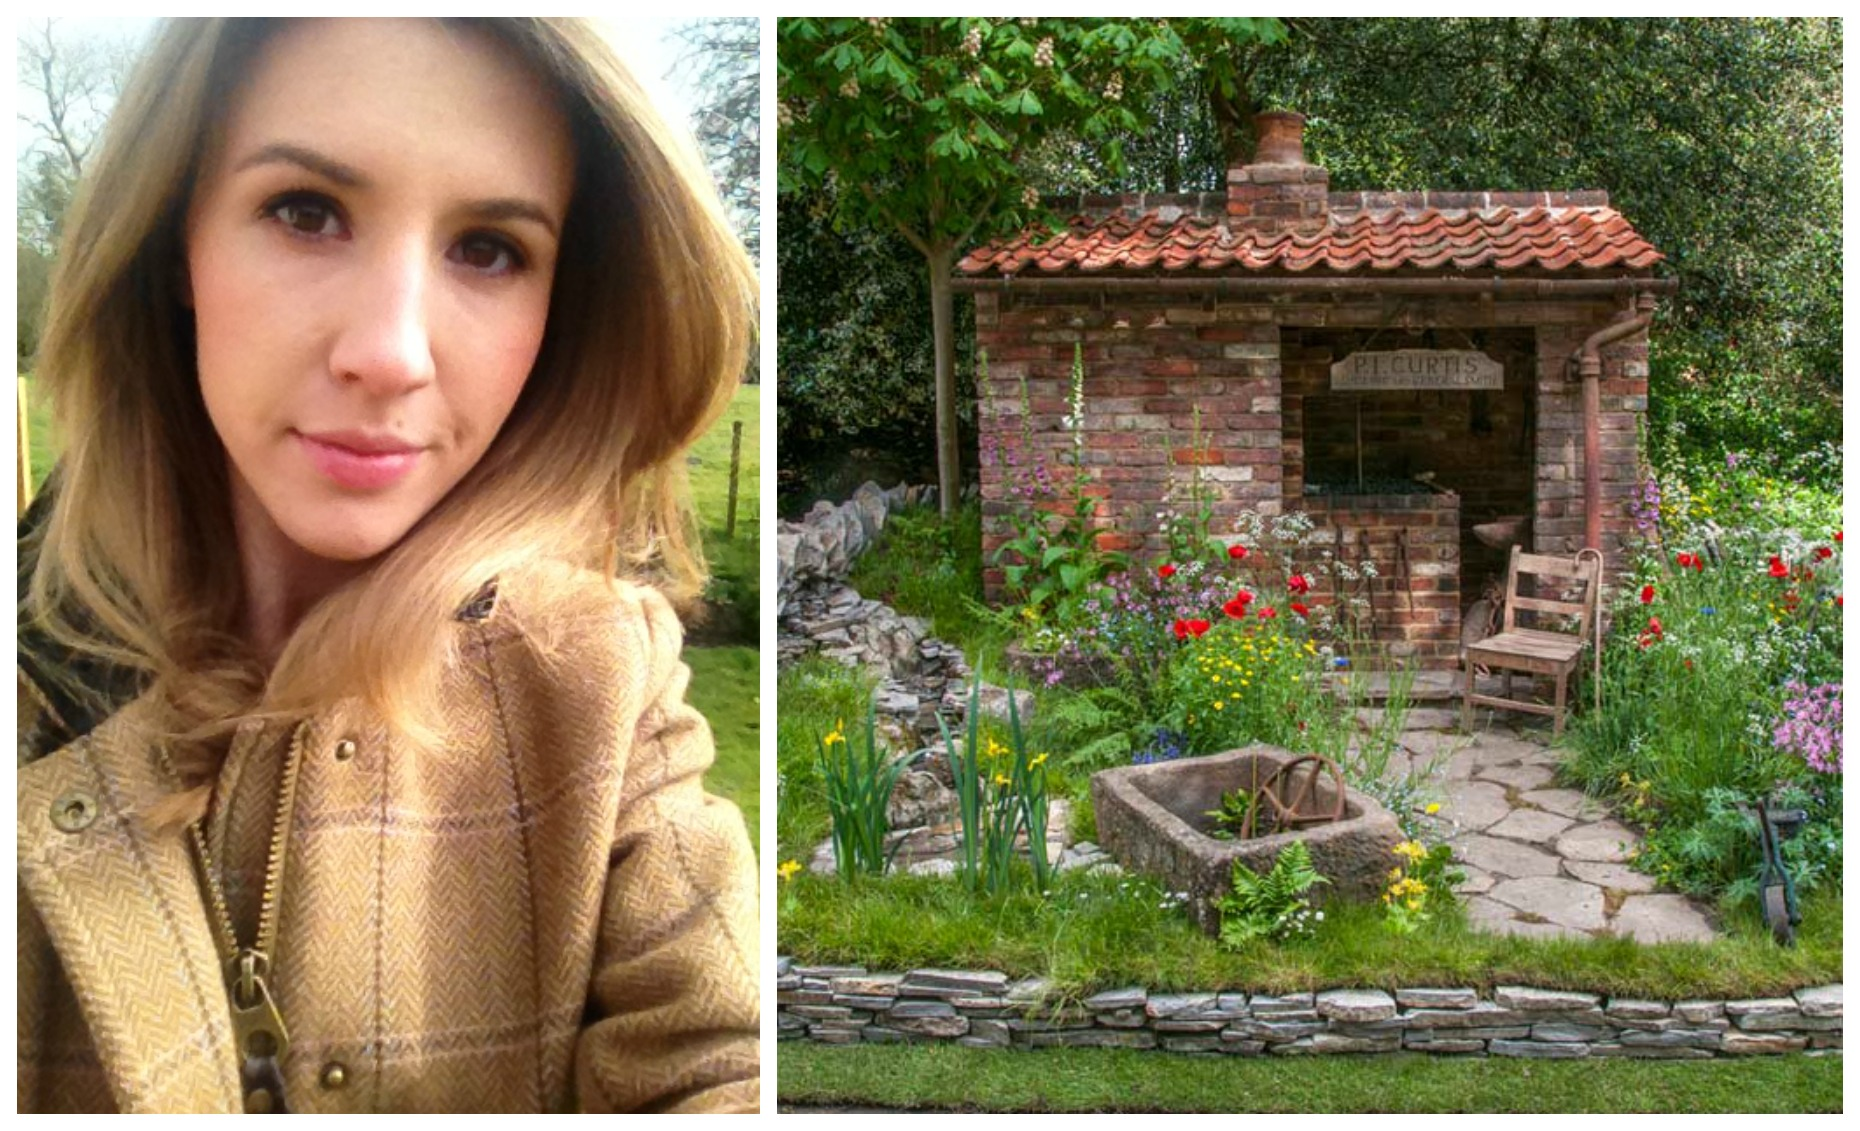 Silver medal and royal praise for young Lincoln gardener at Chelsea Flower Show - The Lincolnite - Chelsea-Flower-Show-Collage